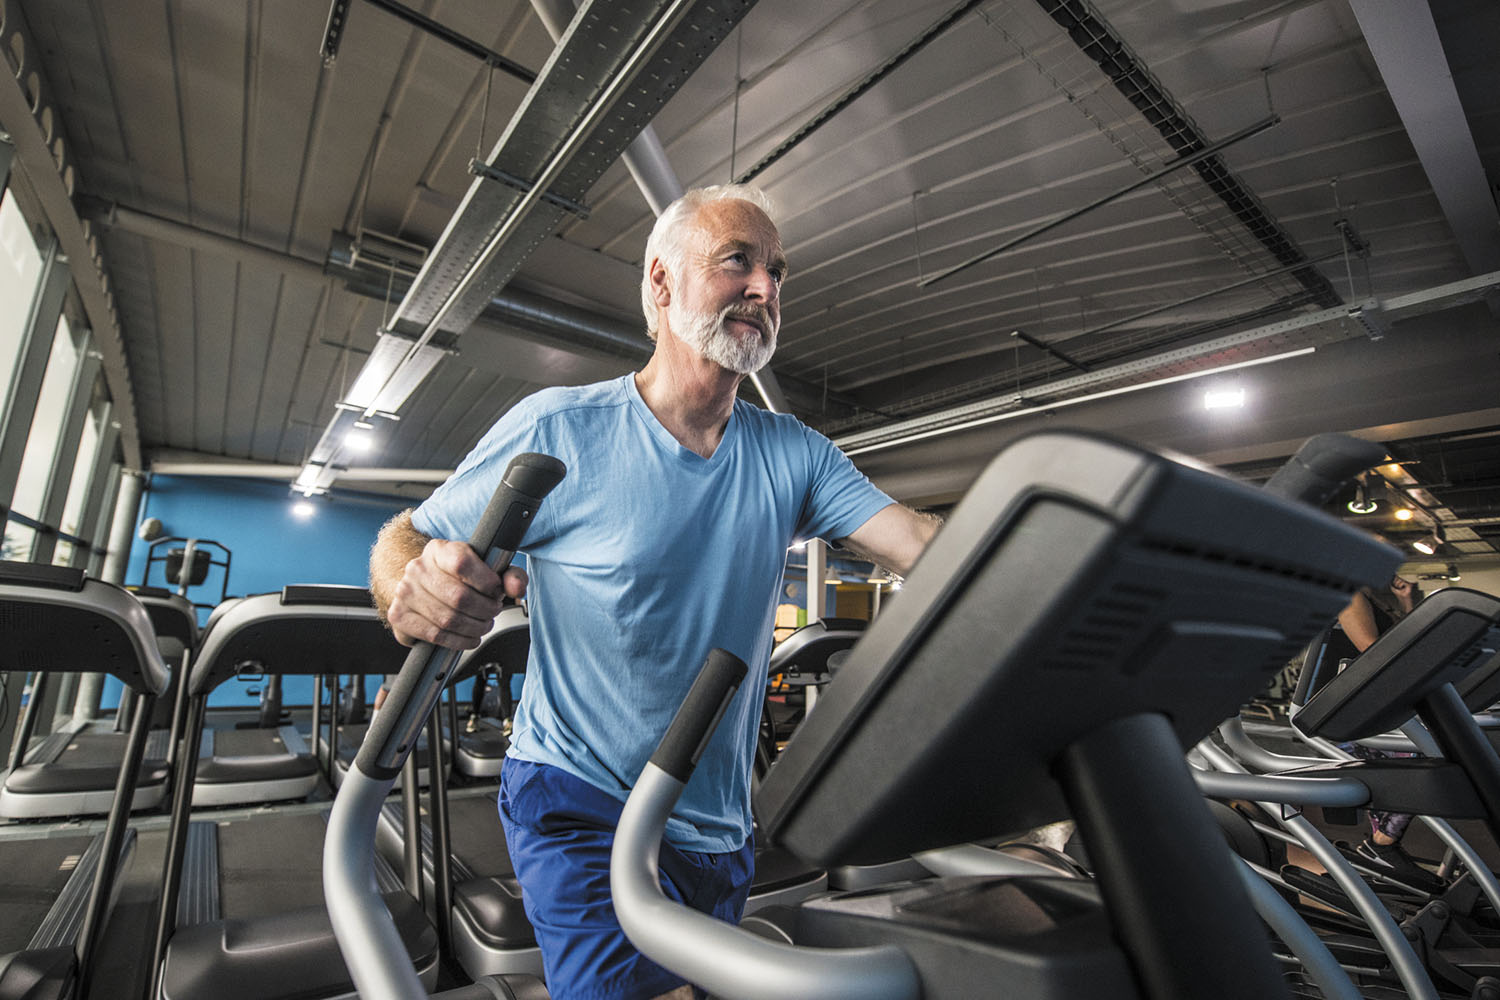 get moving to slow cardiovascular aging - harvard health